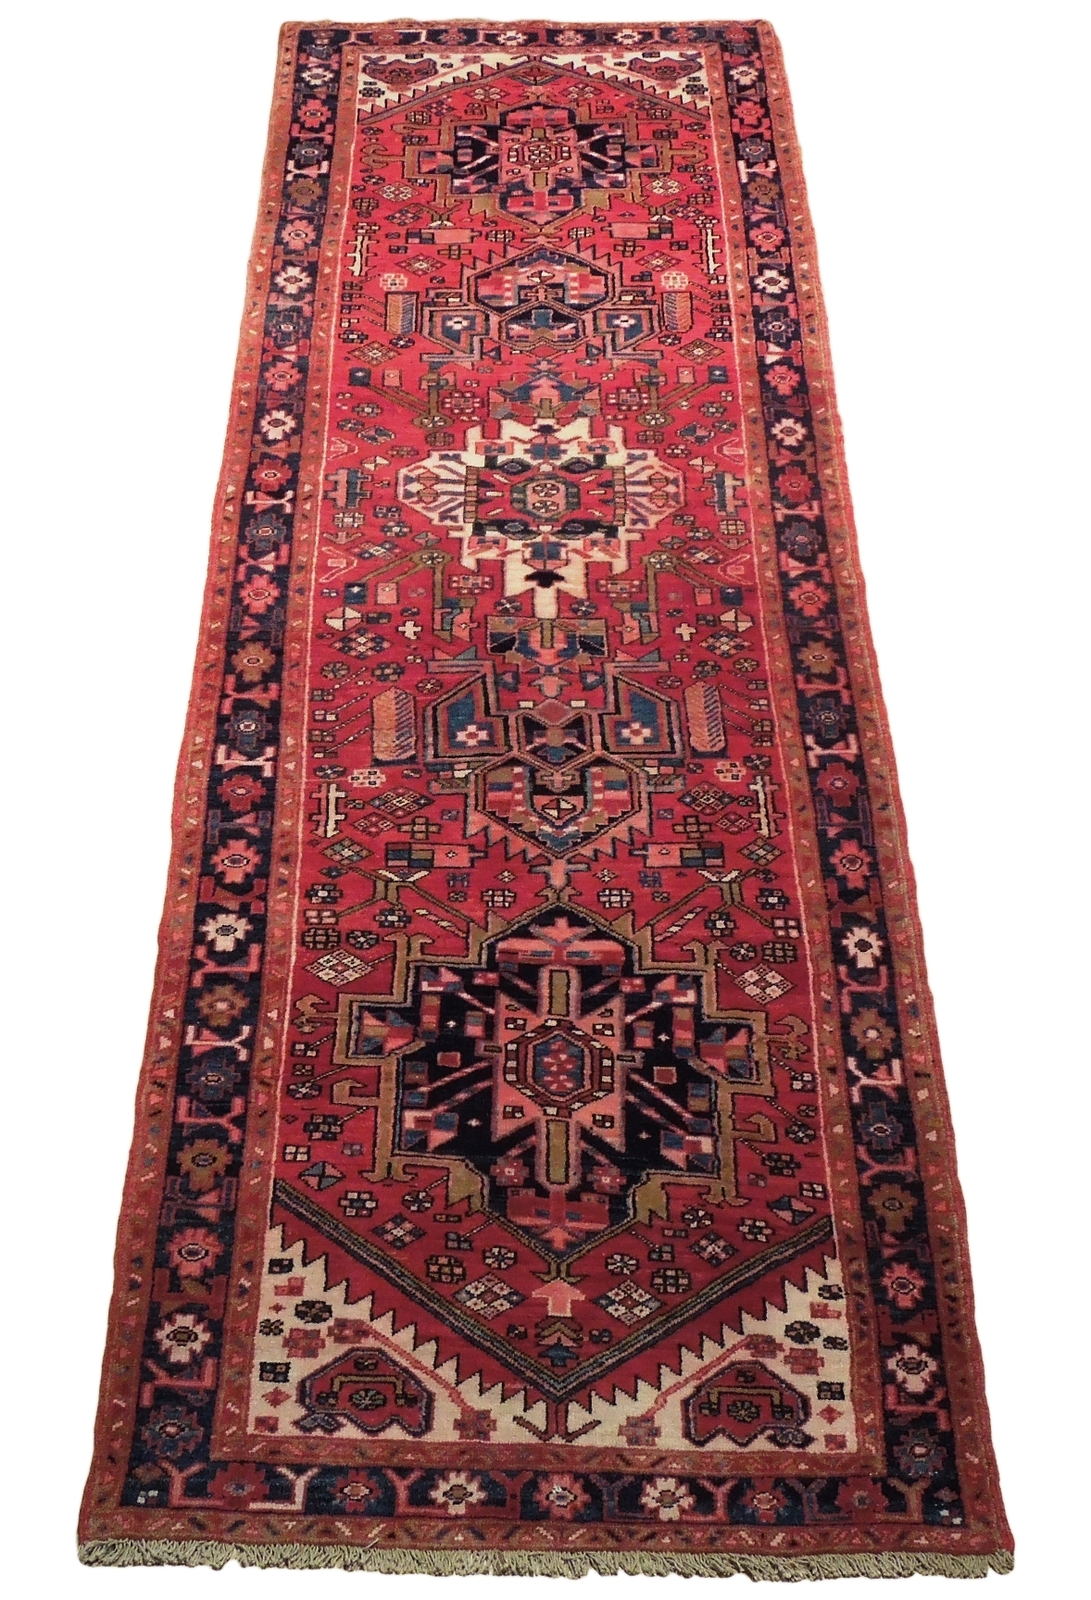 Tribal Inspired Olde Runner Persian Hand-Knotted 2' x 11' Red Heriz Wool Rug